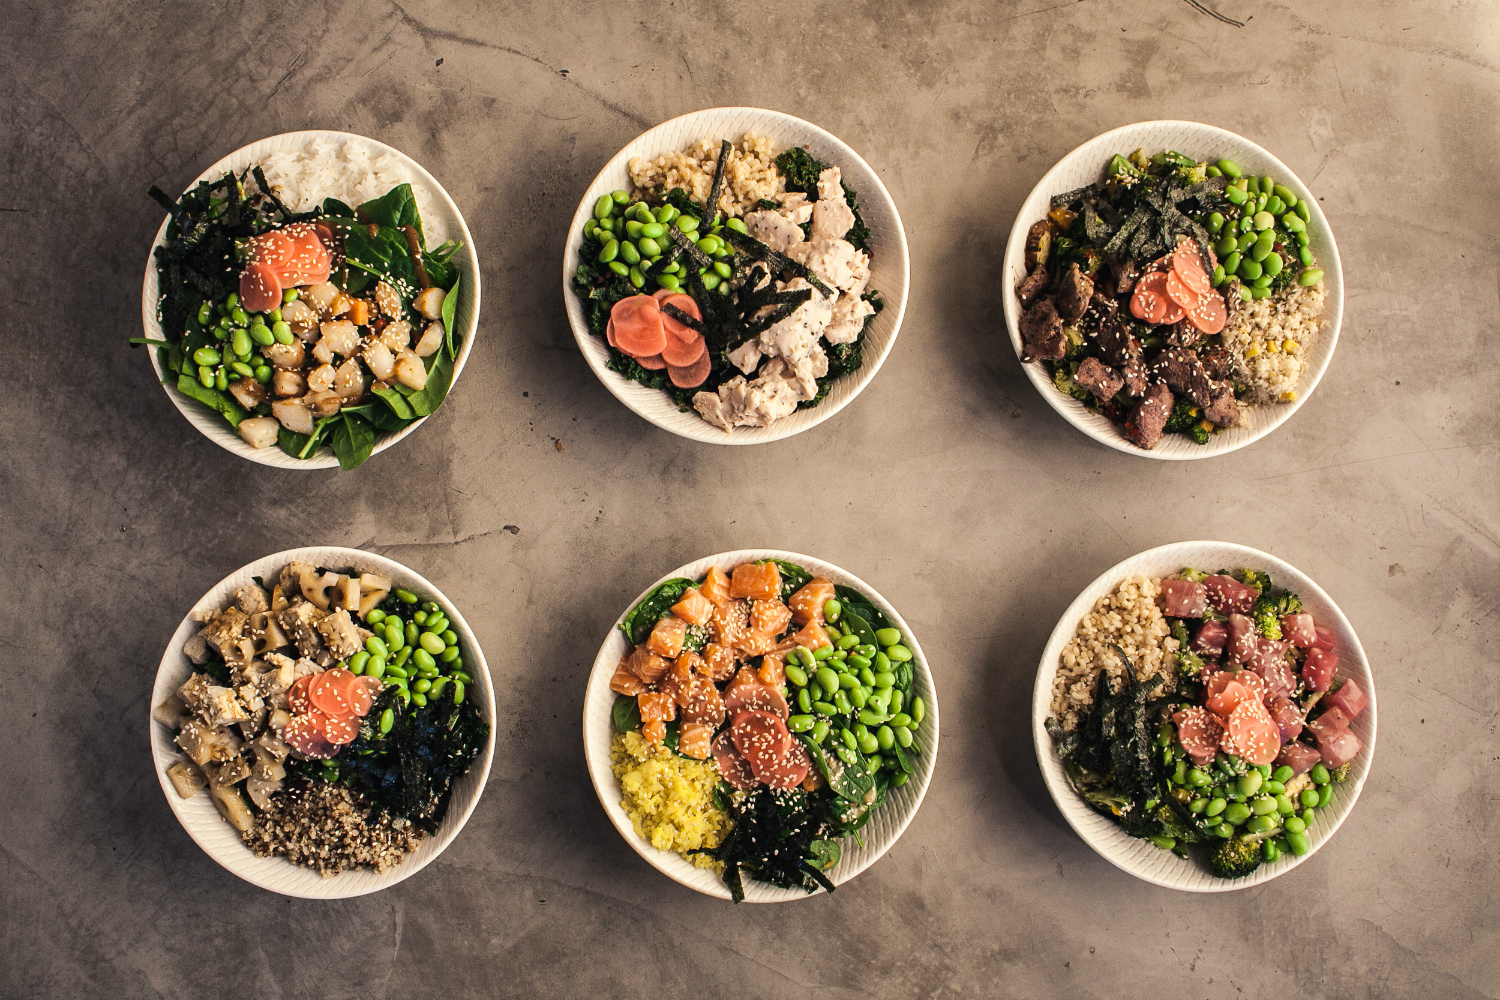 Nosh is giving away 100 bowls of poke